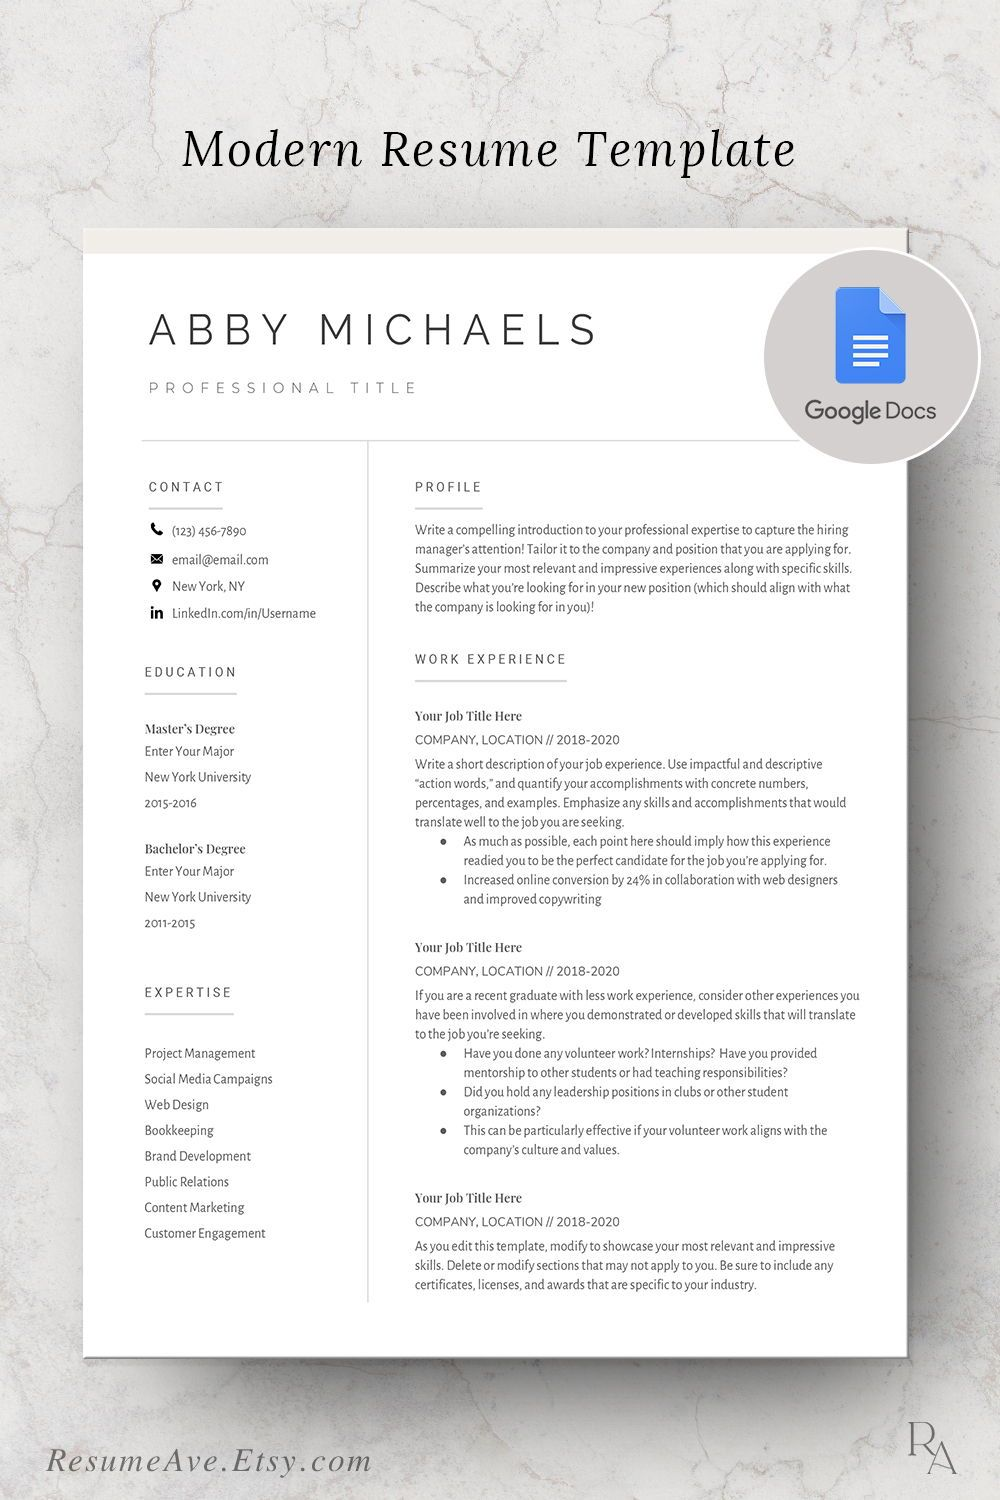 Modern google docs resume / cv template, nurse resume / cv